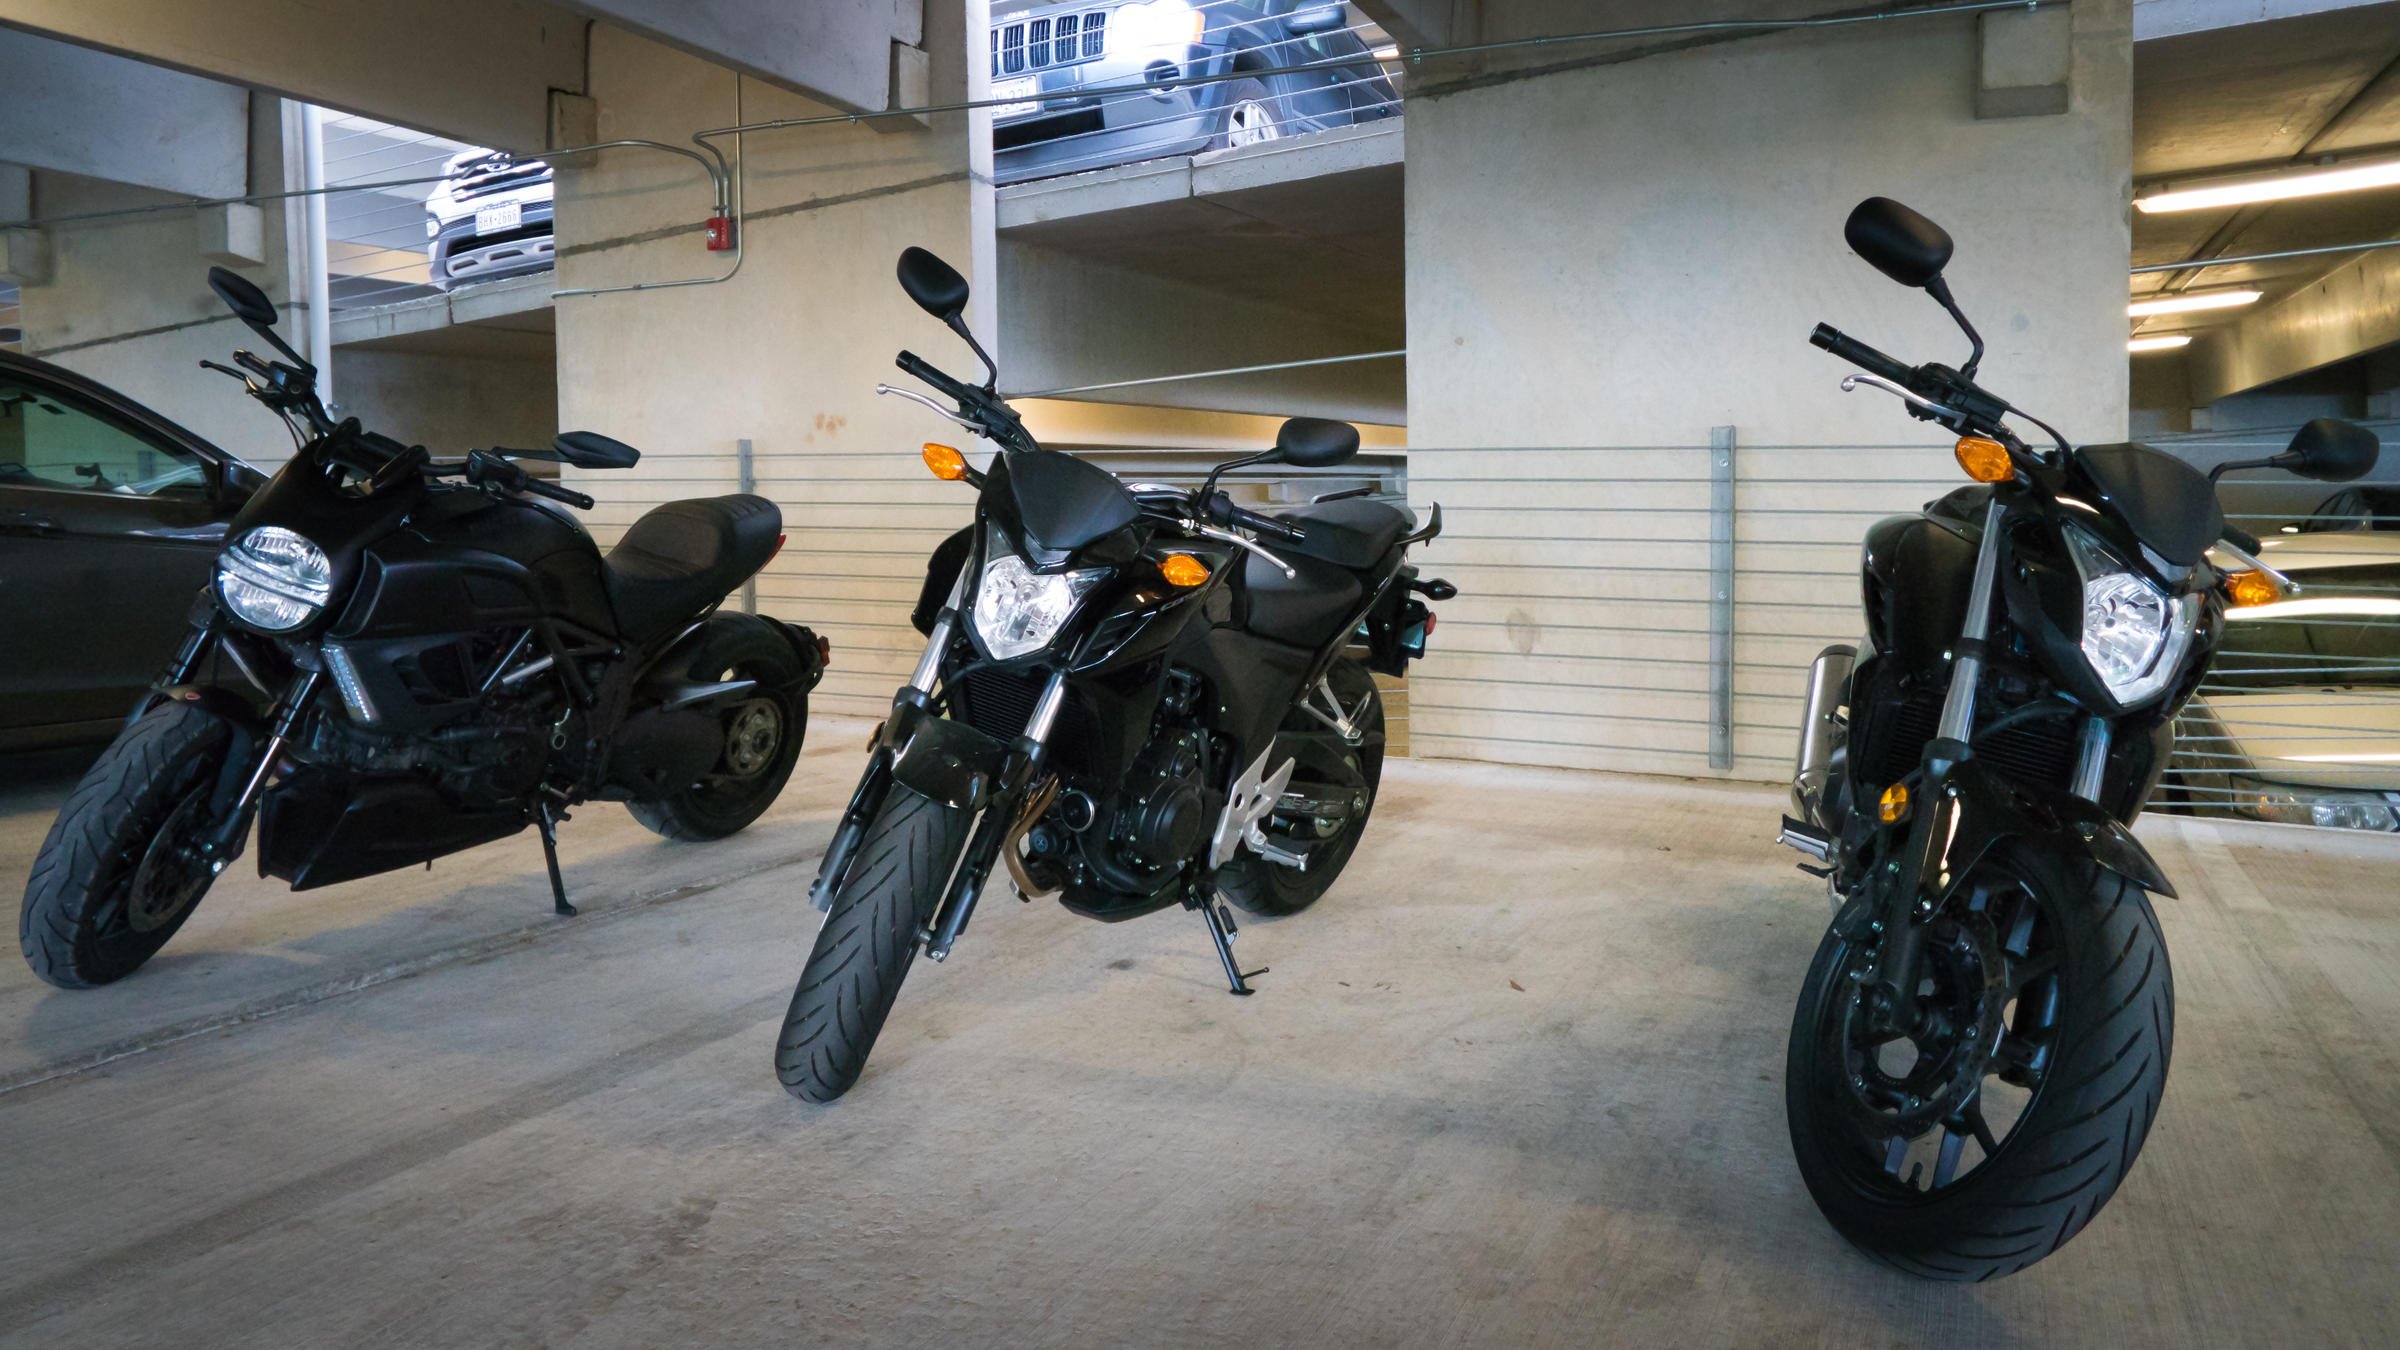 Jacksonville Motorcycle Thefts More Than Double; Police Lay Out  Theft-Prevention Tips